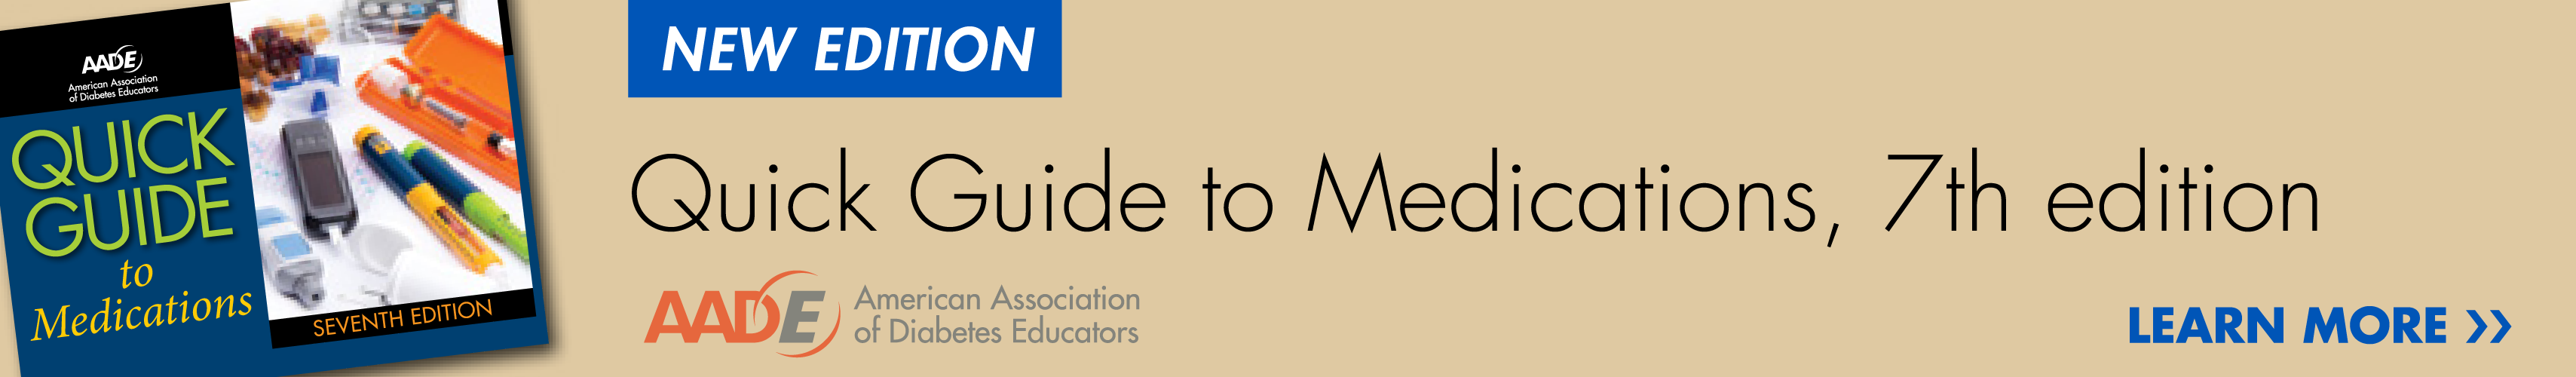 AADE-quick-guide-to-meds-ad-41-6-rev